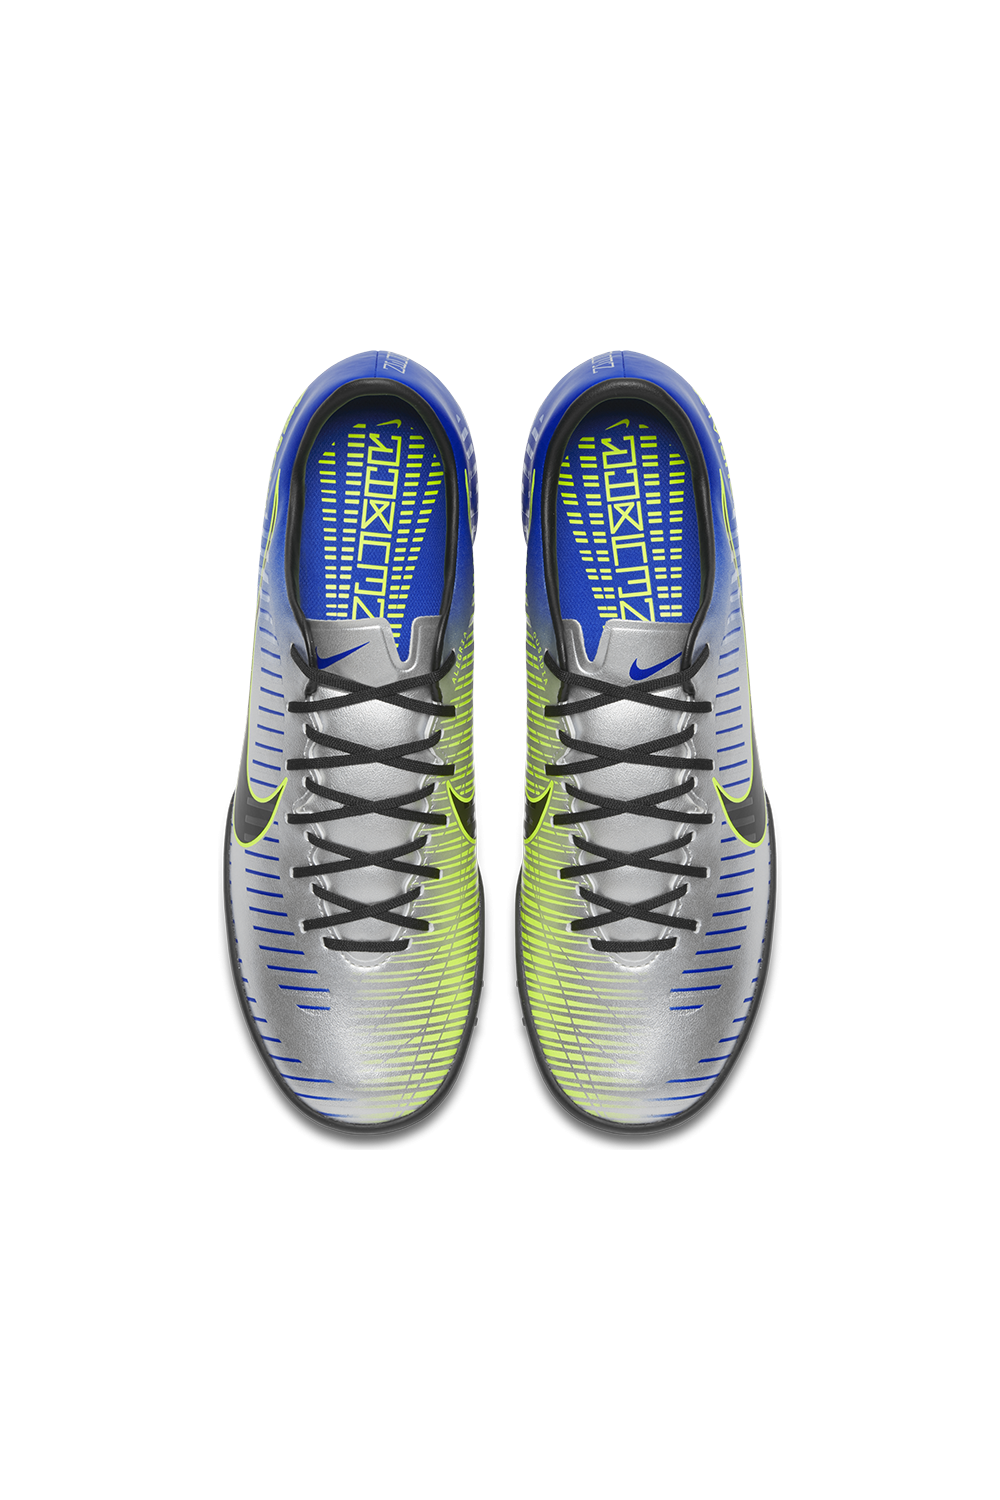 best website 47a4e bf531 Neymar Mercurial Victory VI TF by Nike at Gazelle Sports ...